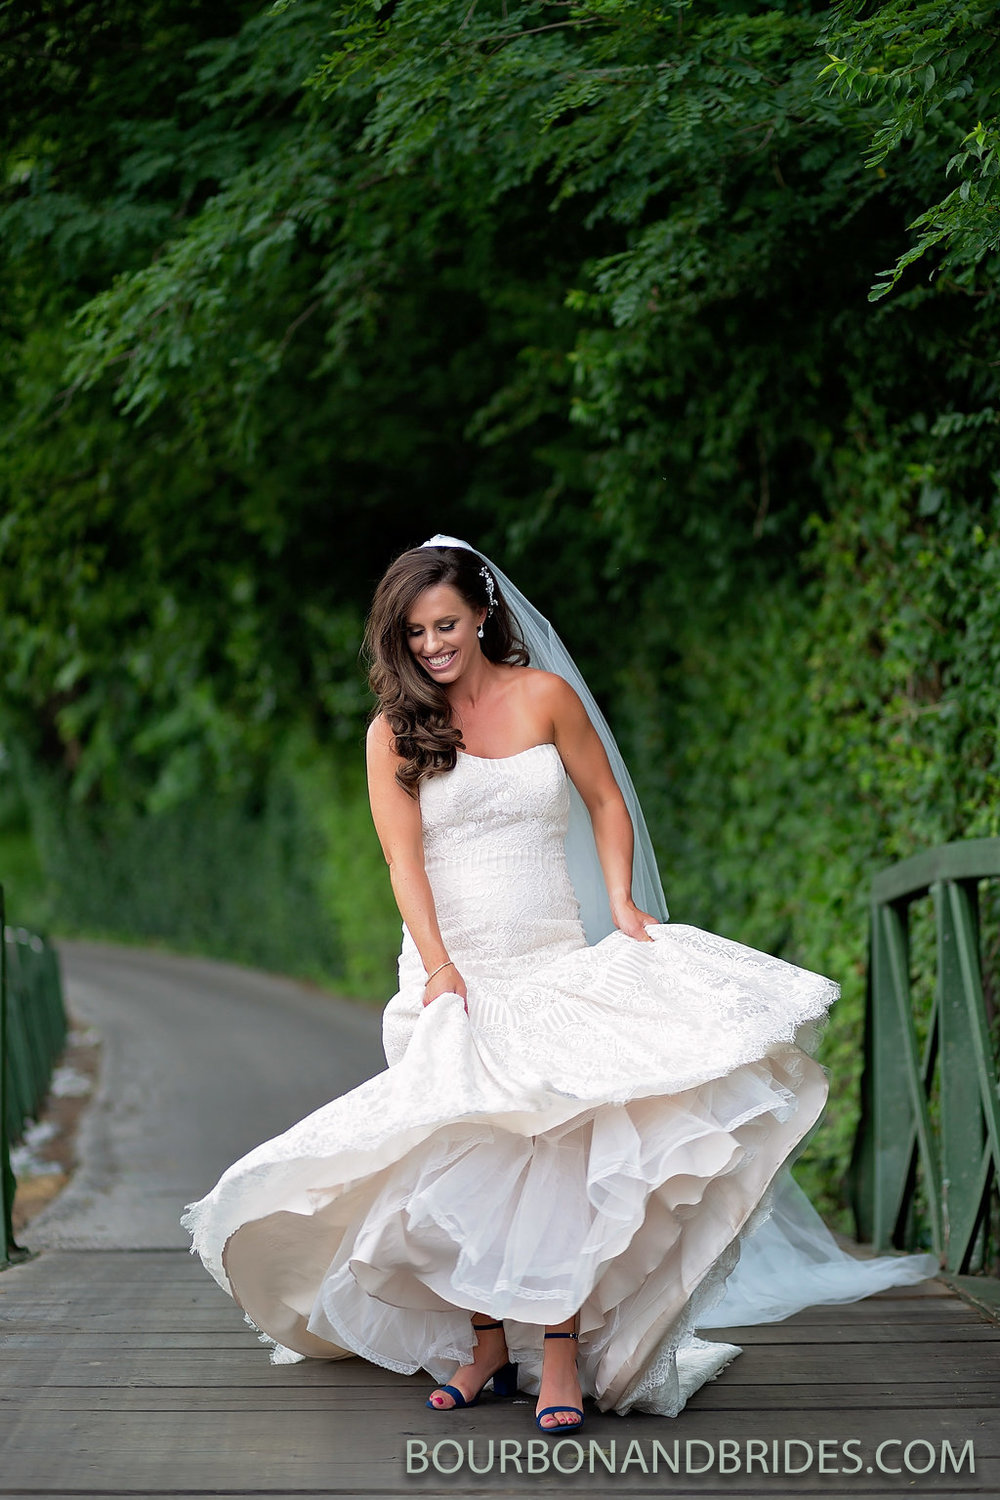 lexington-kentucky-wedding-bride-dancing.jpg